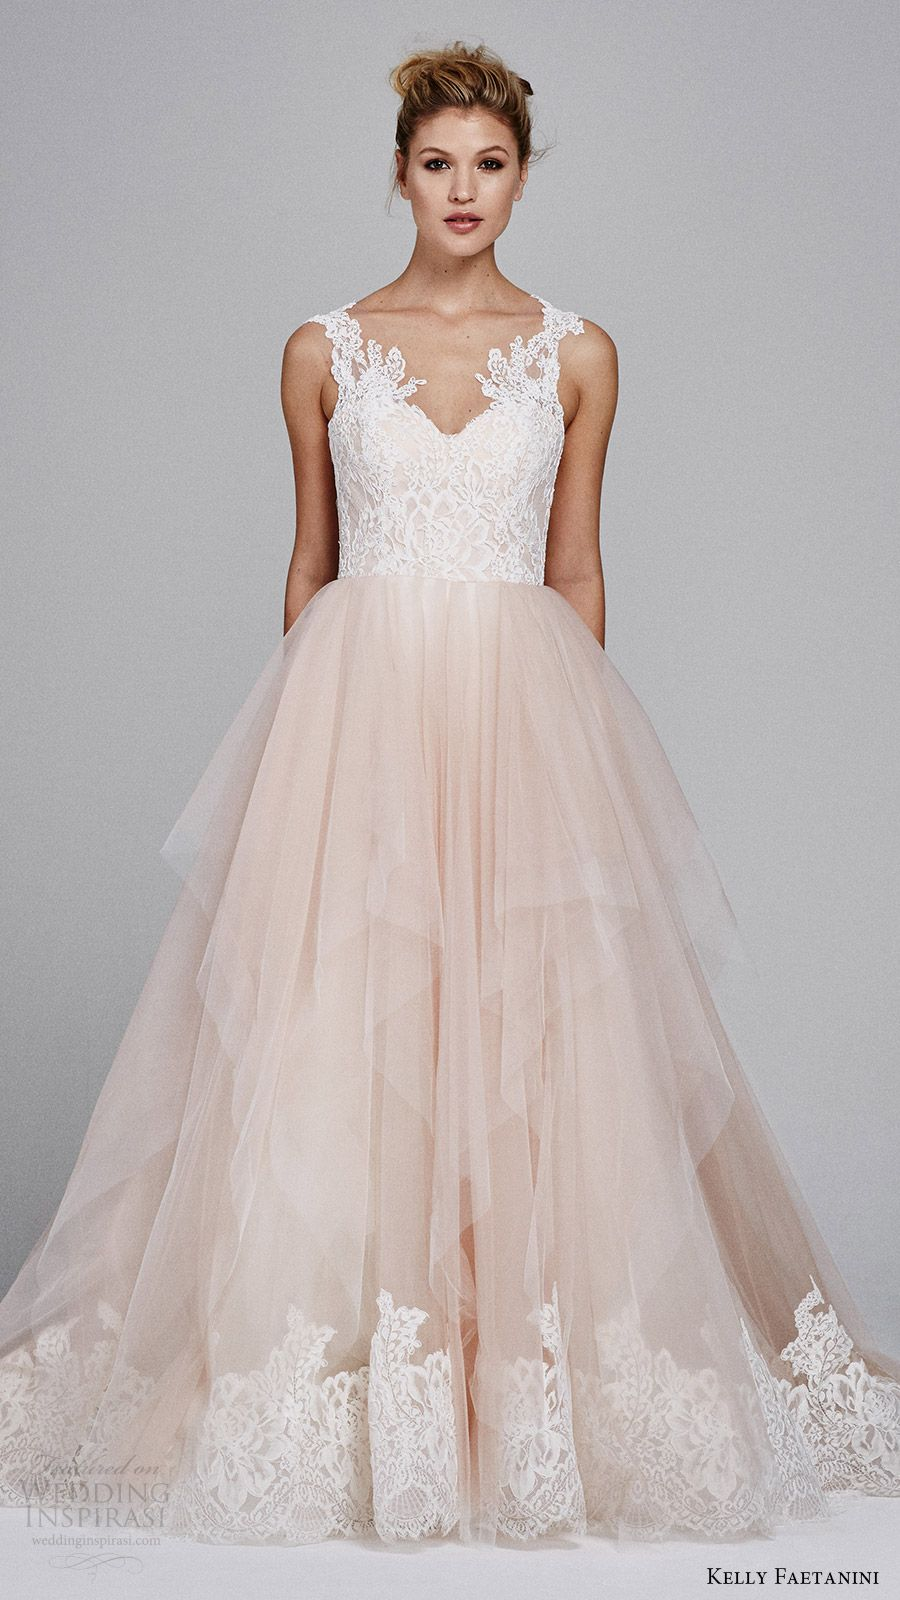 Kelly Faetanini Fall 2017 Sleeveless Sweetheart Lace Bodice Aline Wedding Dress Azalea Mv Blush Skirt Hem